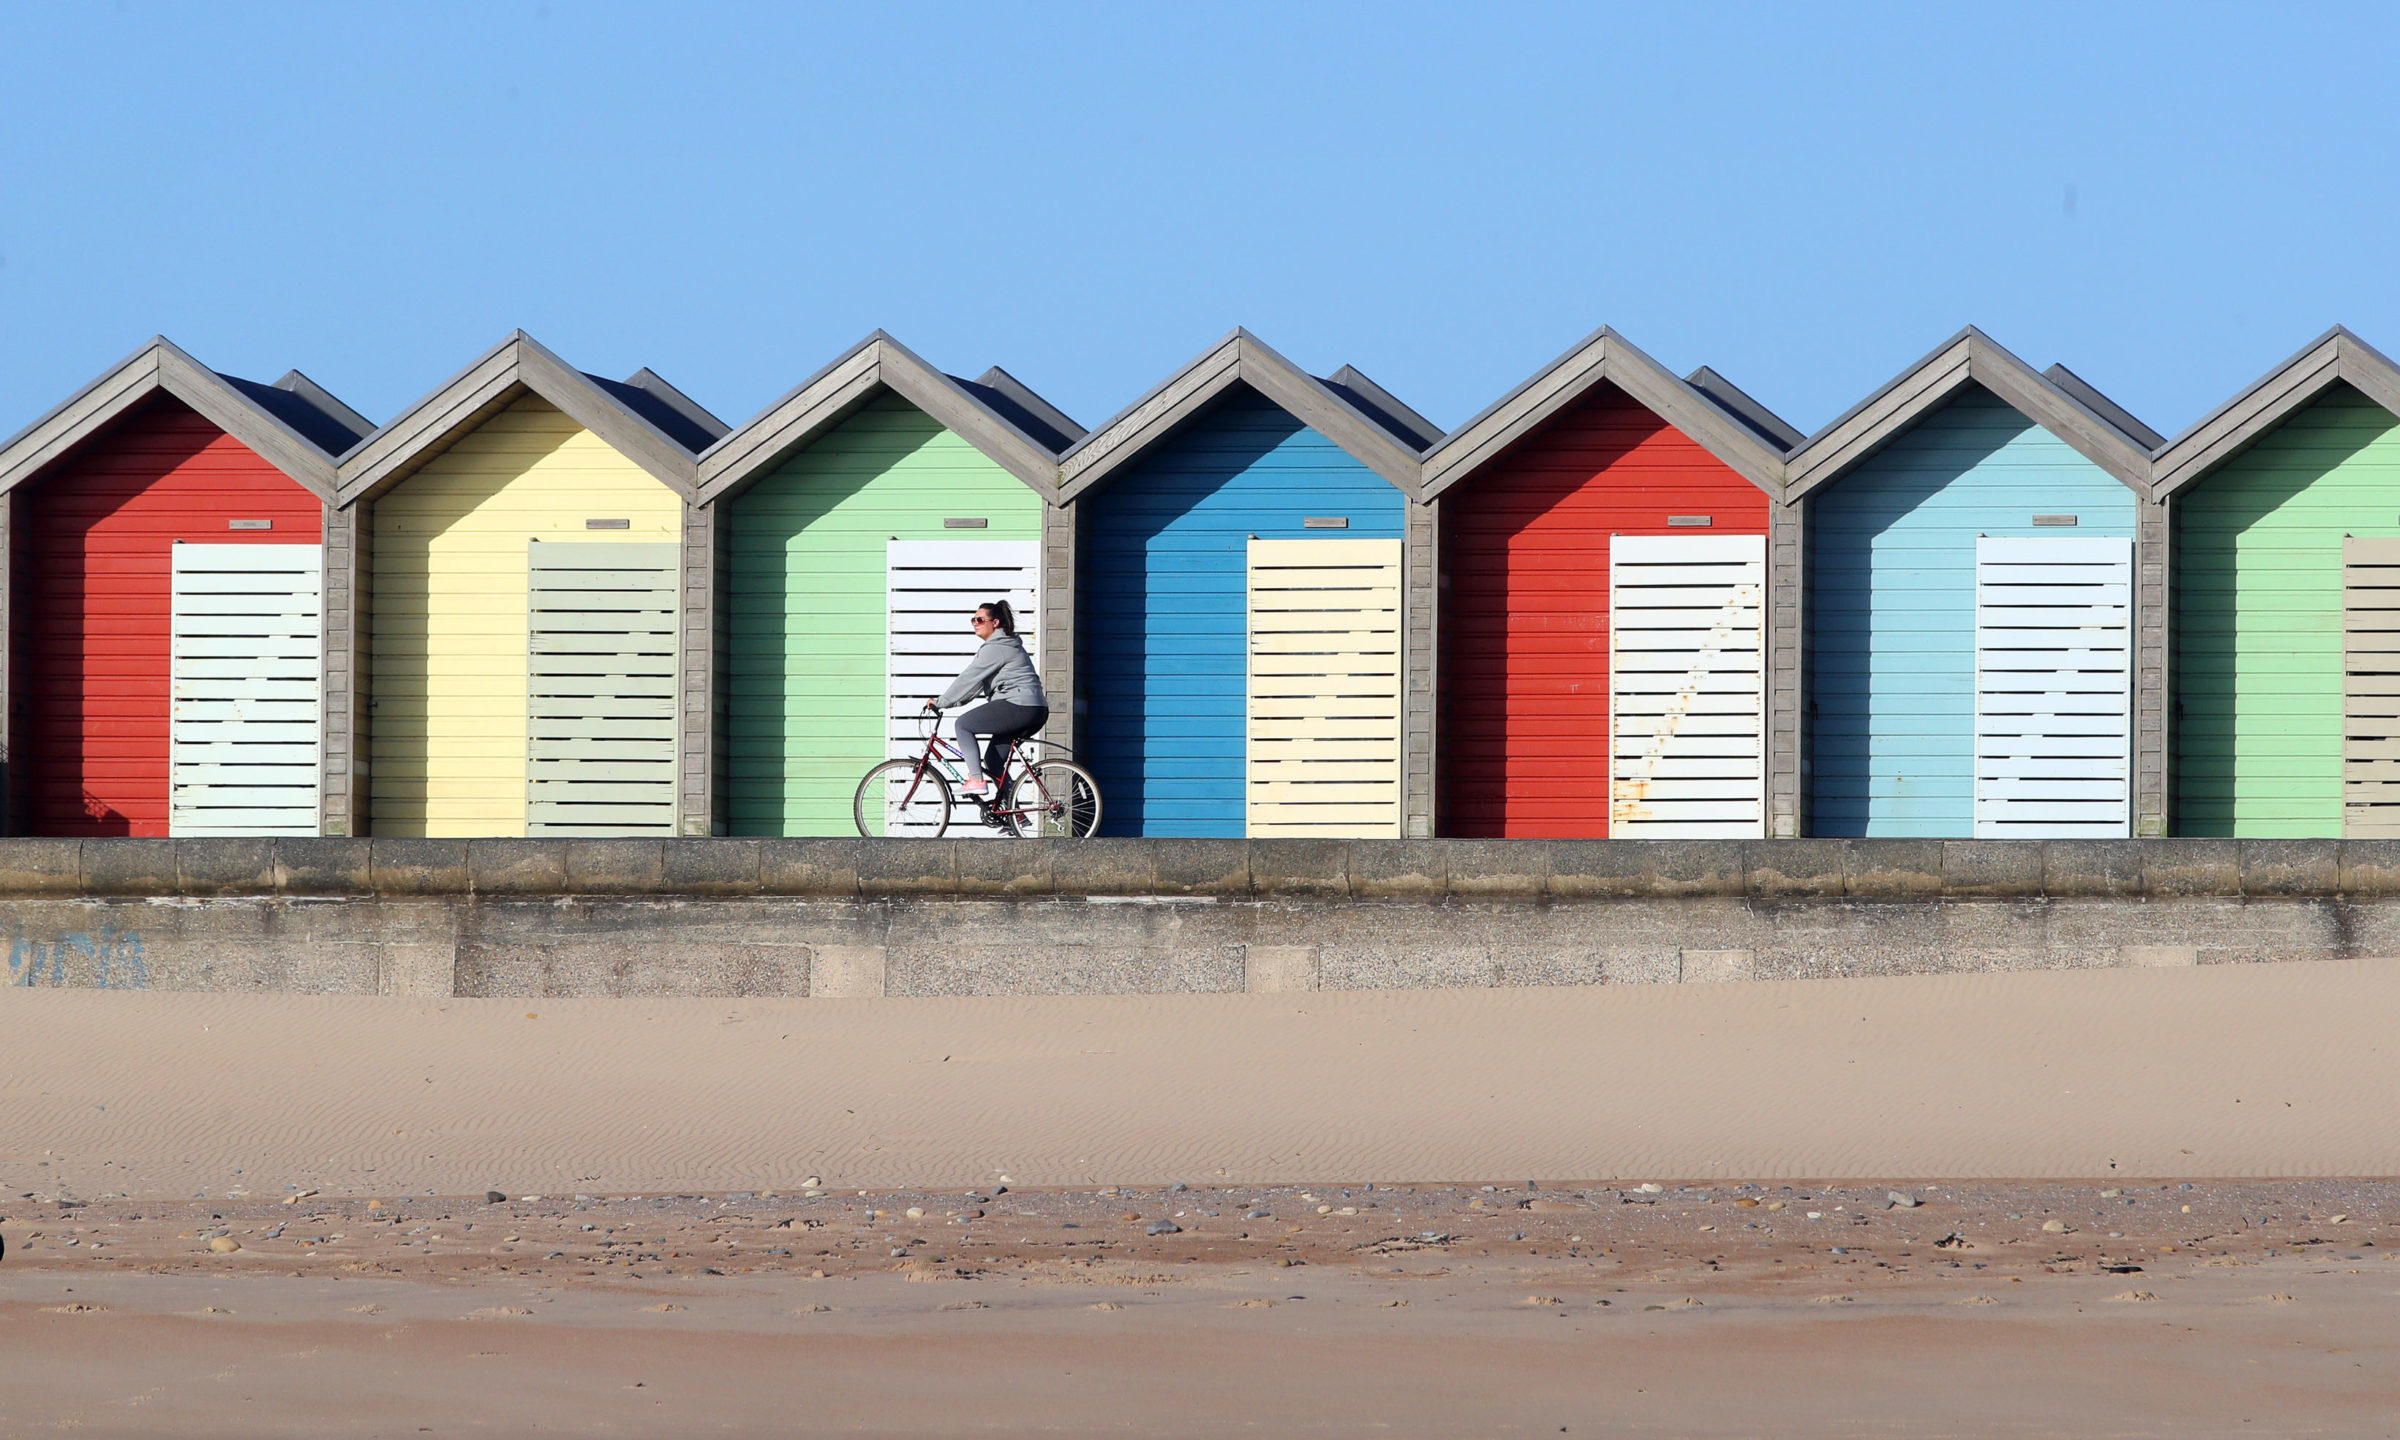 A cyclist takes some exercise at Blyth beach near Whitley Bay in Northern England as the UK continues in lockdown to help curb the spread of the coronavirus. PA Photo. Picture date: Monday April 6, 2020. See PA story HEALTH Coronavirus. Photo credit should read: Owen Humphreys/PA Wire